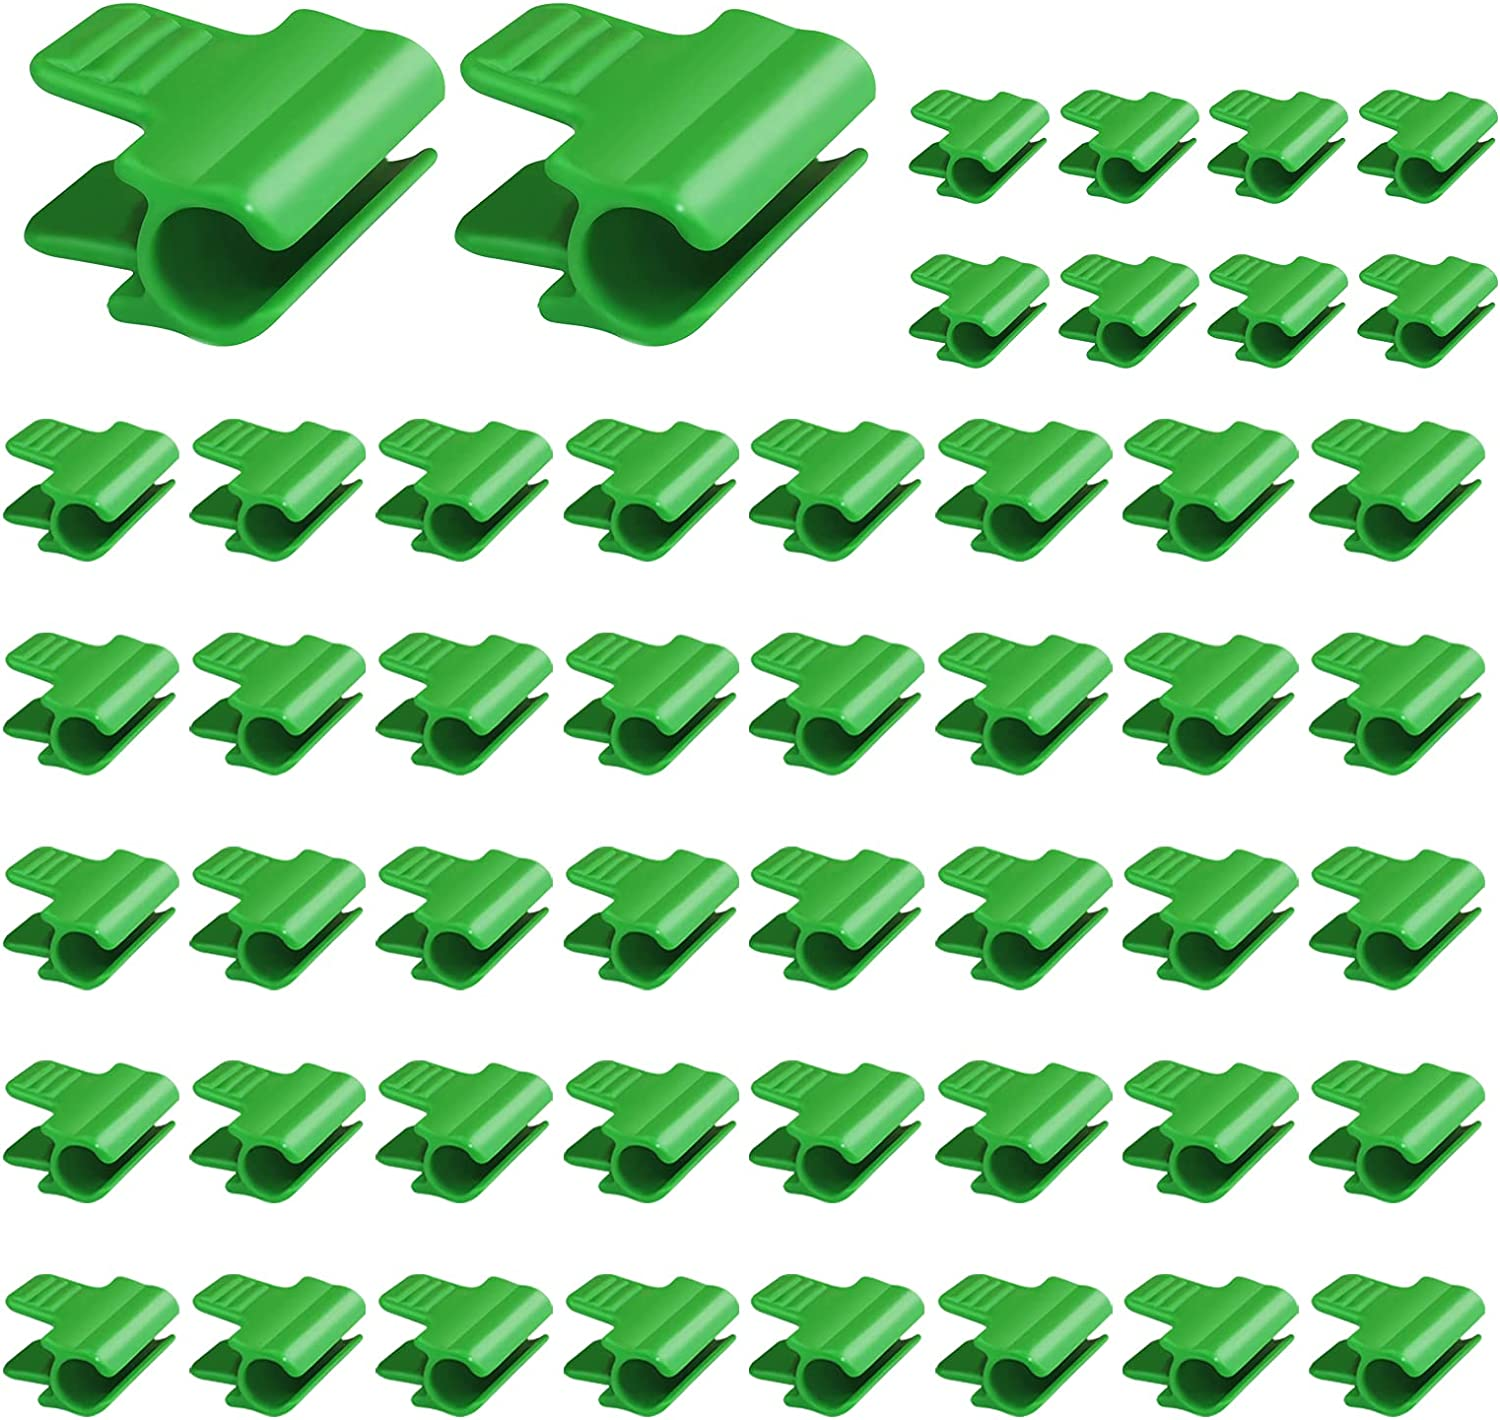 40 PCS Greenhouse Clamps Clips,11mm Film Row Cover Netting Tunnel Garden Hoop Pipe Clips Film Fixing Clamp ,Shading Net Rod Clip ,for Greenhouse Frame Shelters